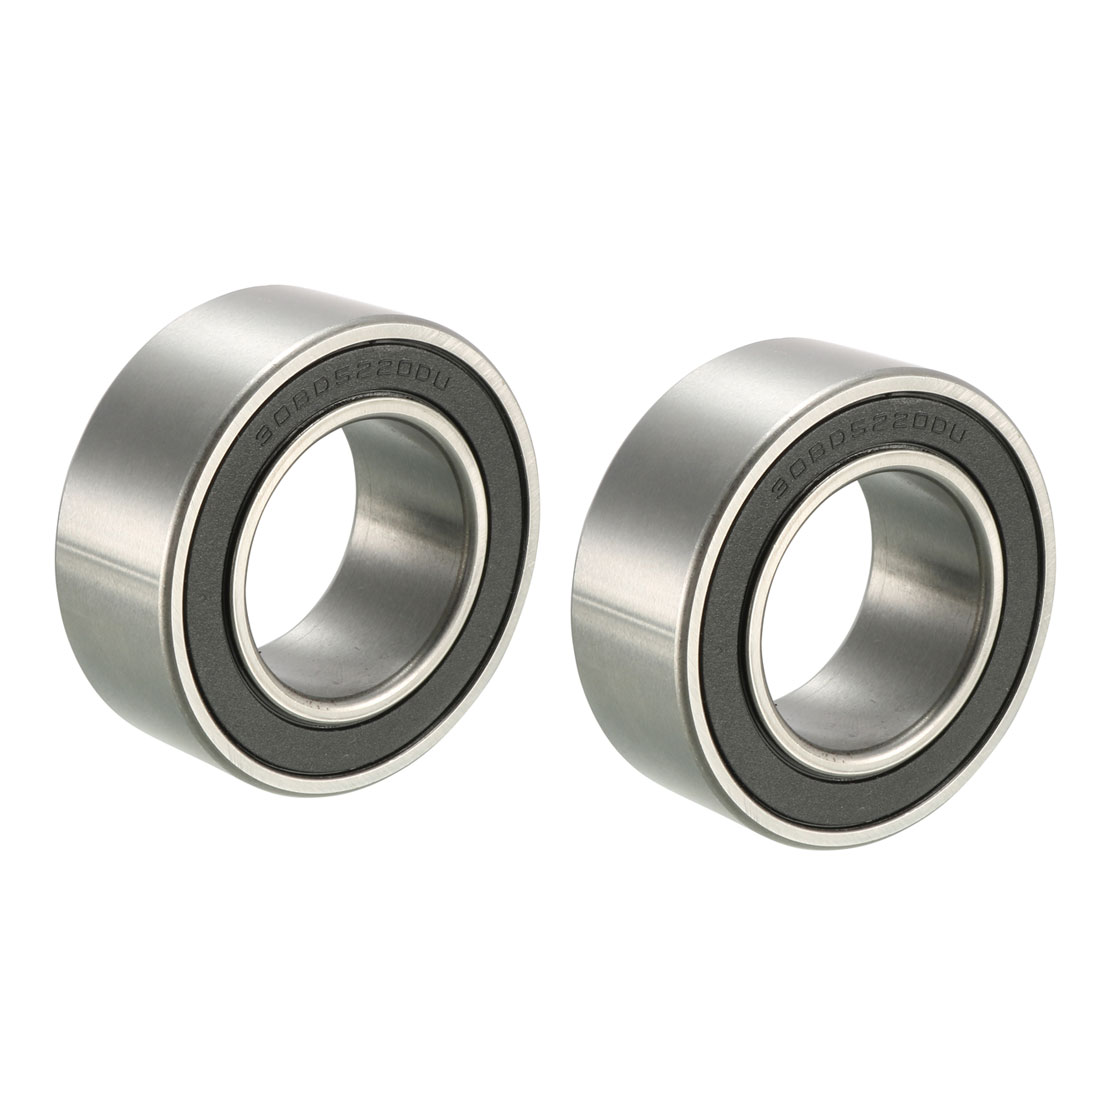 30BD5220 50mm Inner Dia 30mm OD Shielded Deep Groove Ball Bearing 2 Pcs